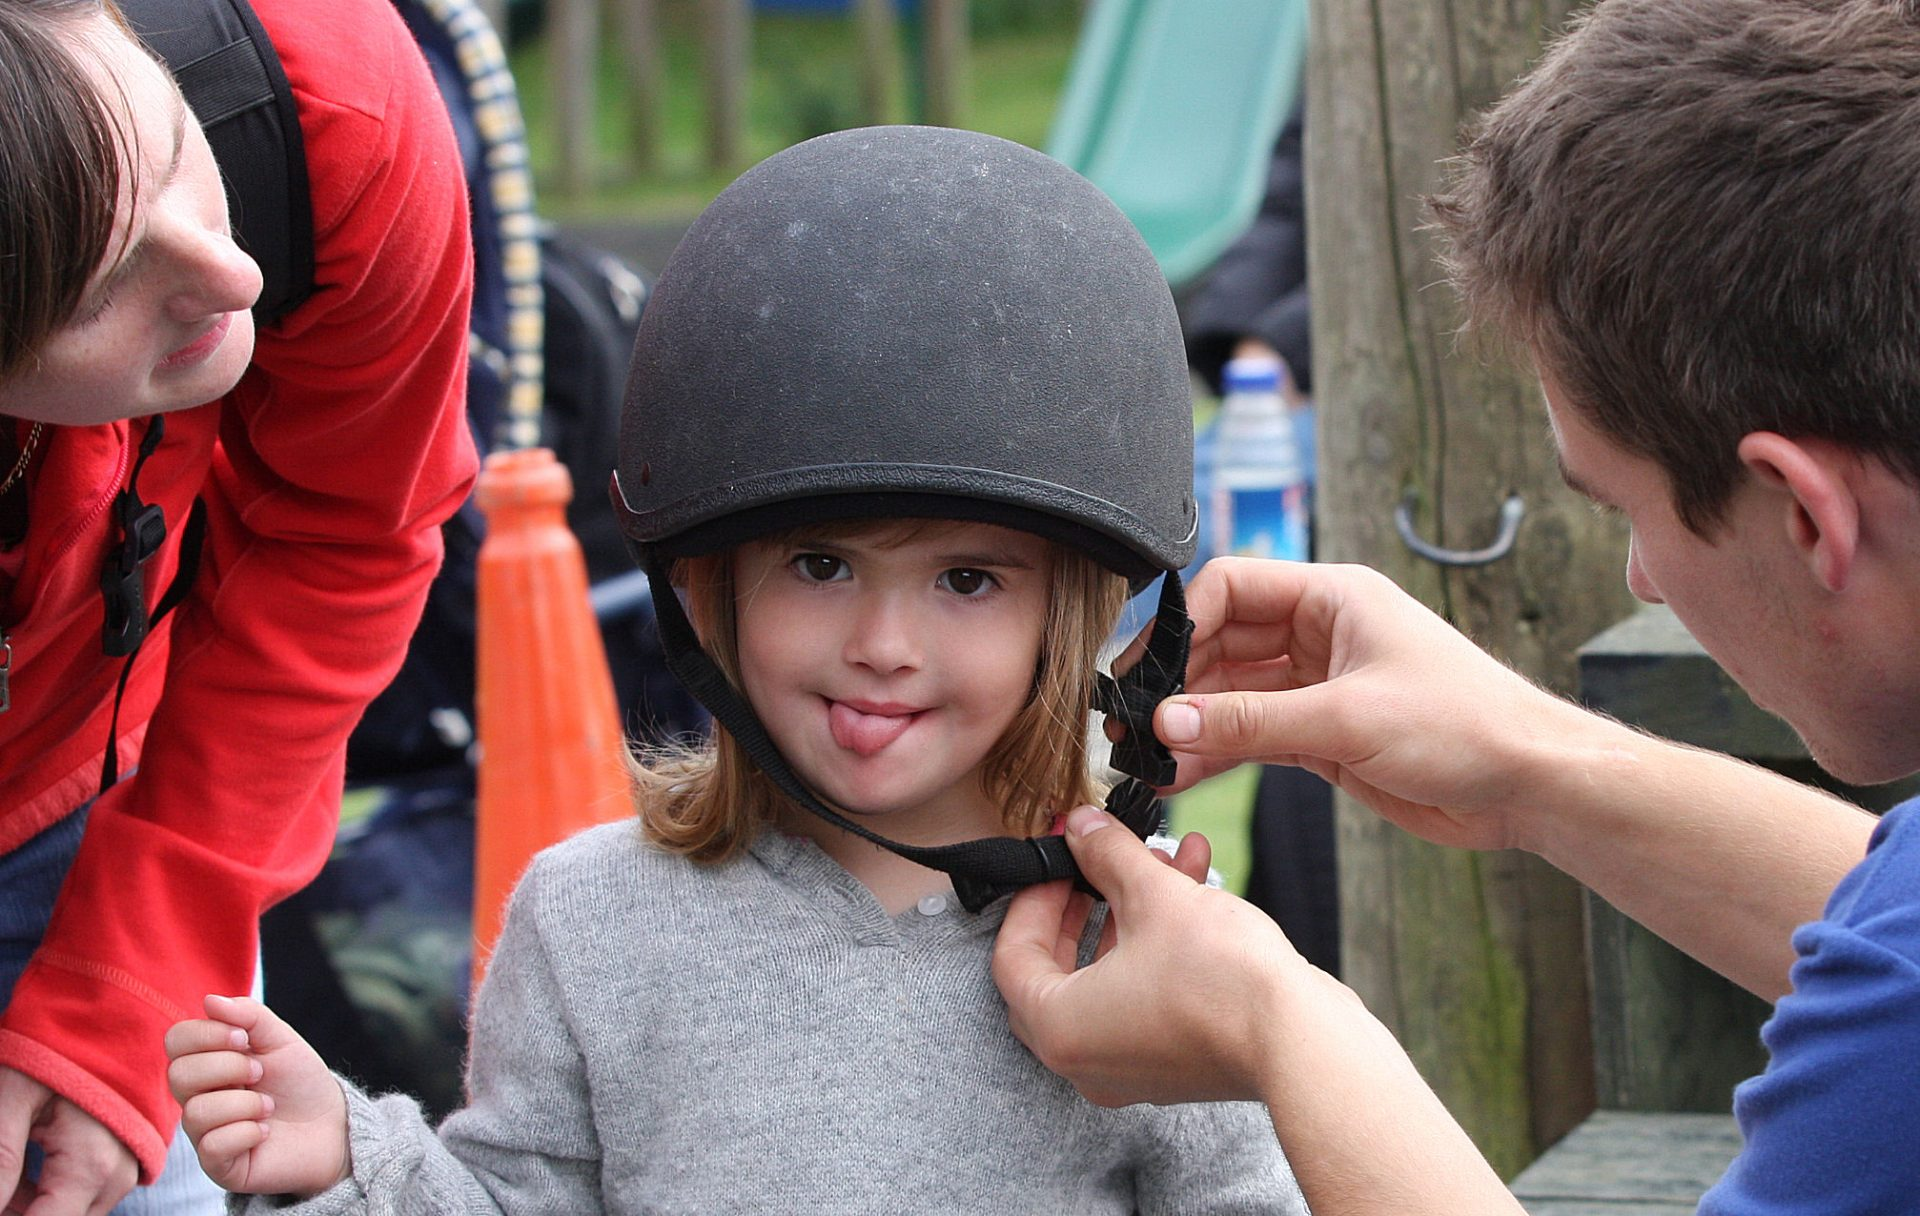 Preparing for a ride on the horse. At the Miniature Pony Centre in Moretonhampstead, sadly now closed.